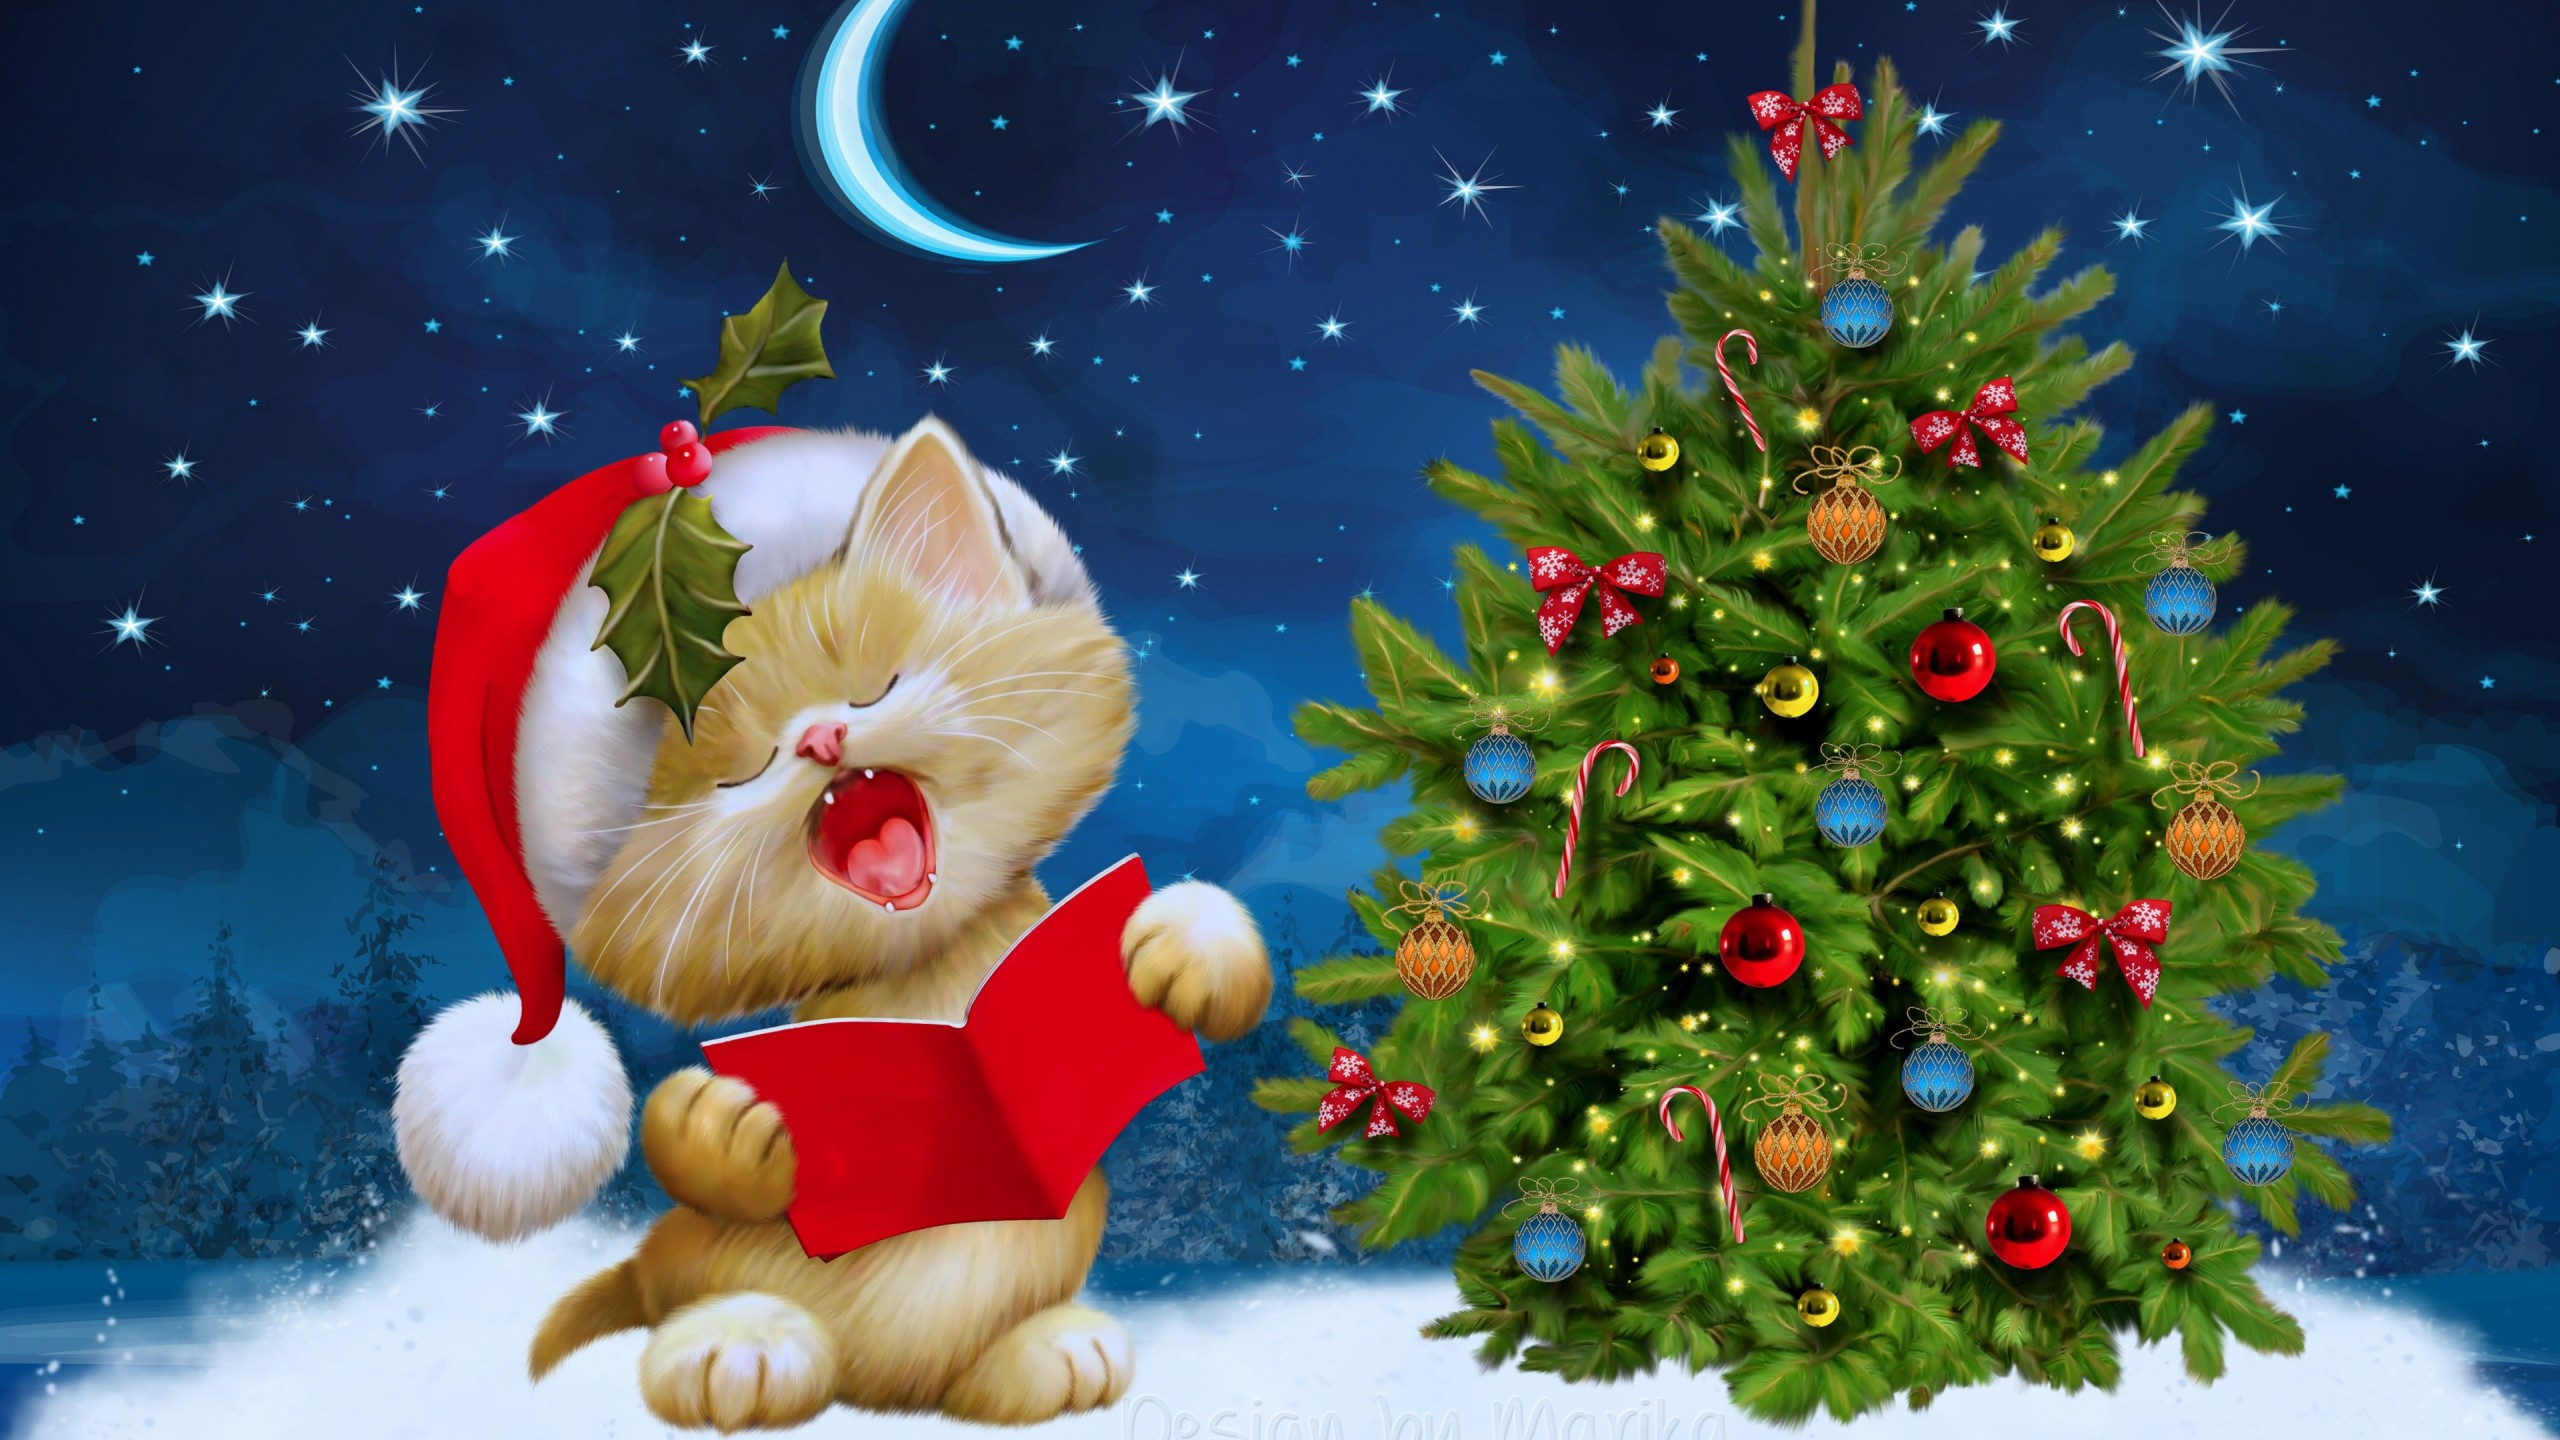 Santa Kitten Singing Christmas Carols Wallpaper for Desktop 2560x1440